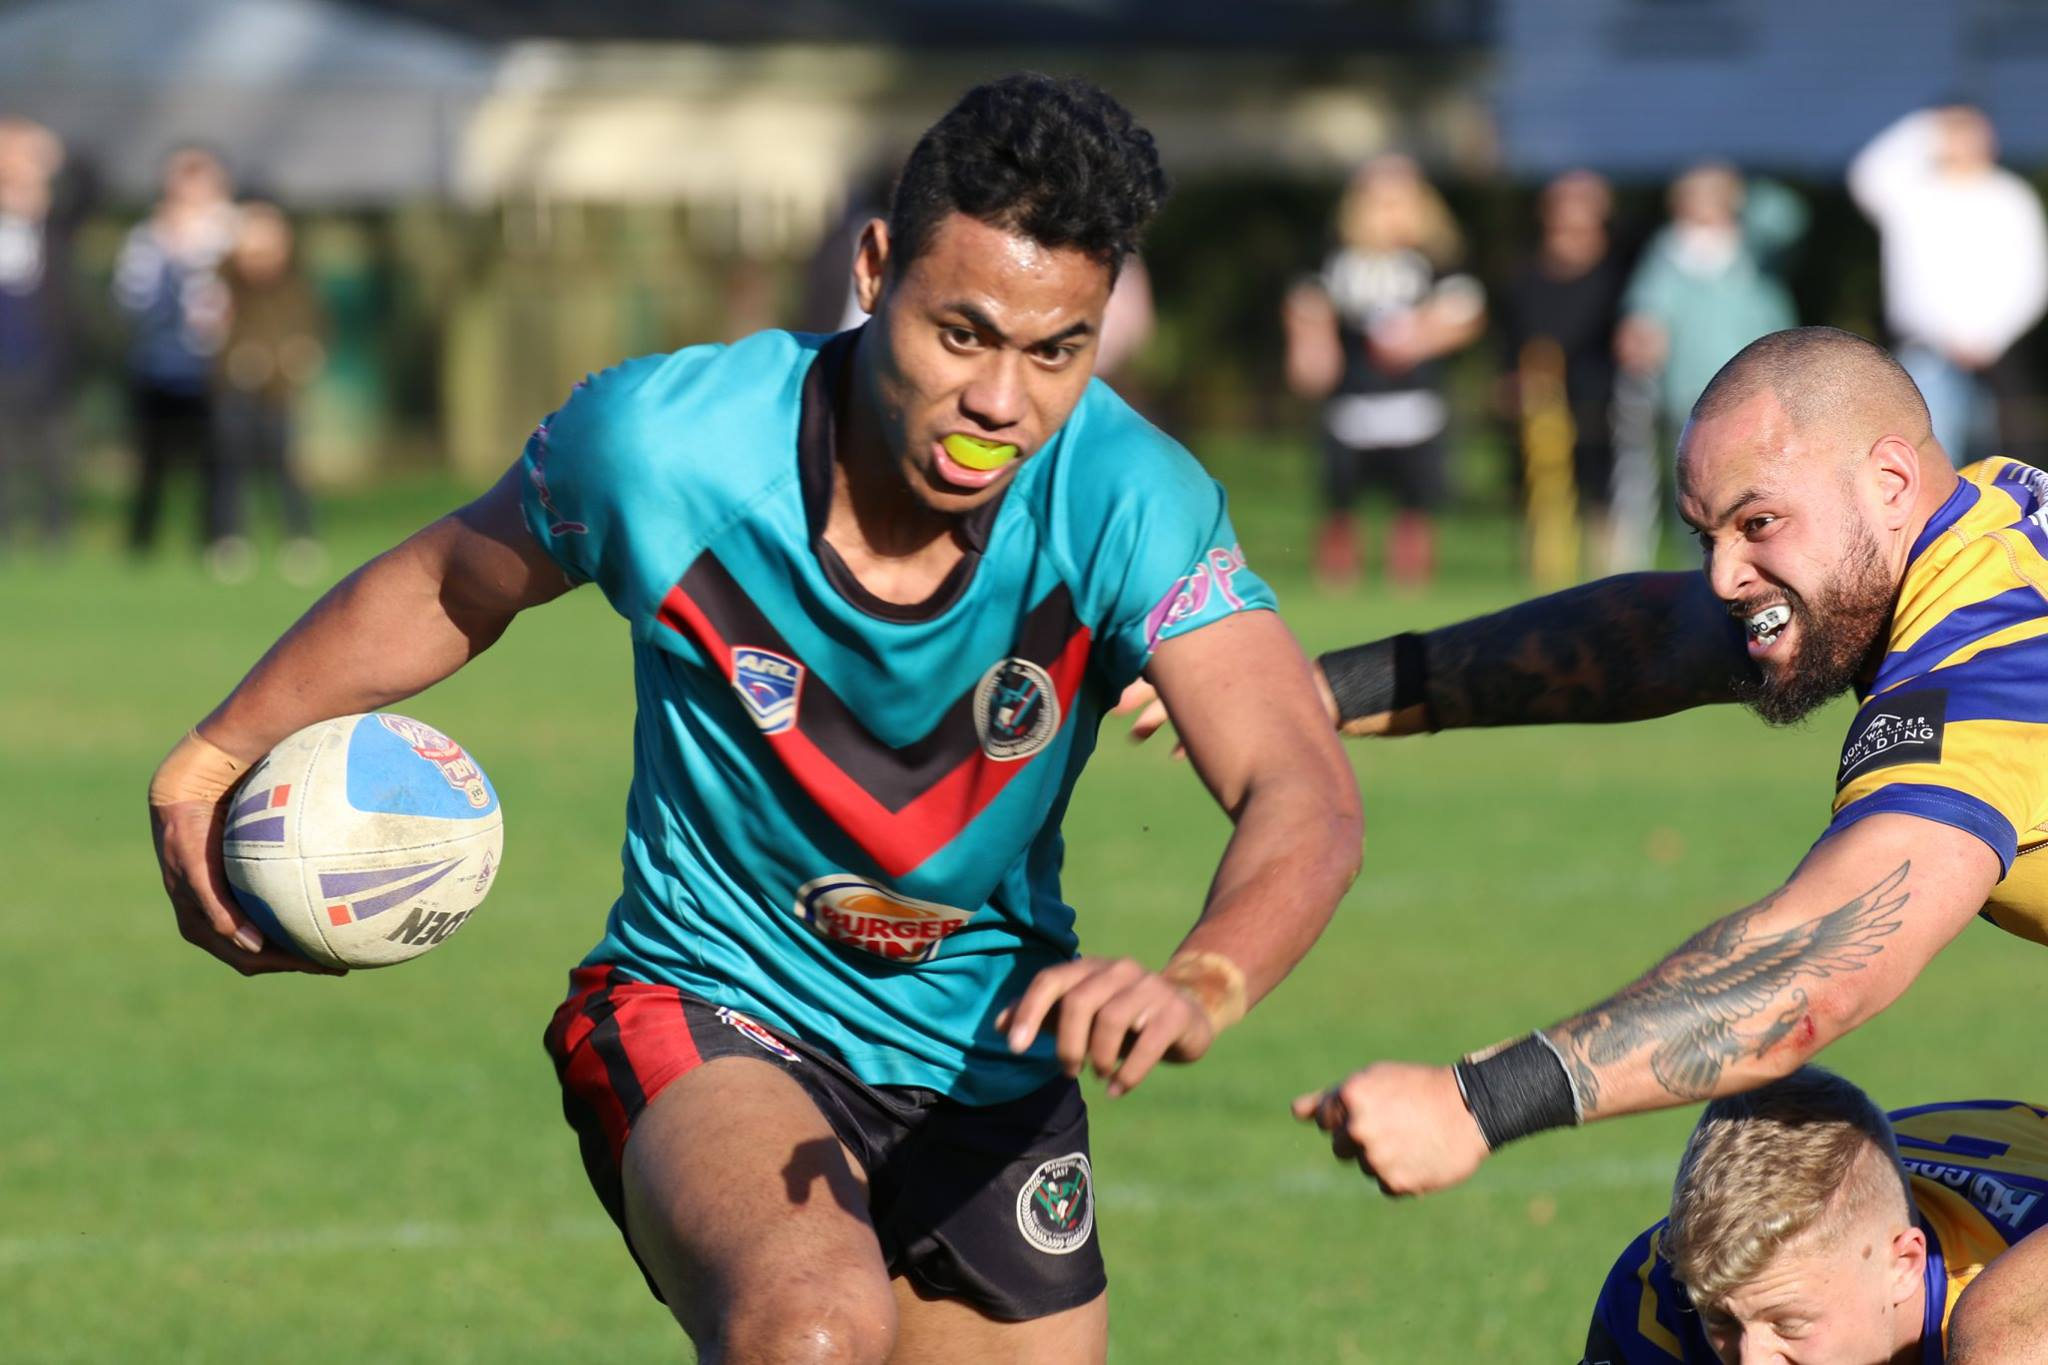 Top of the ladder clashes in this week's Auckland Fox Memorial Premiership Qualifiers